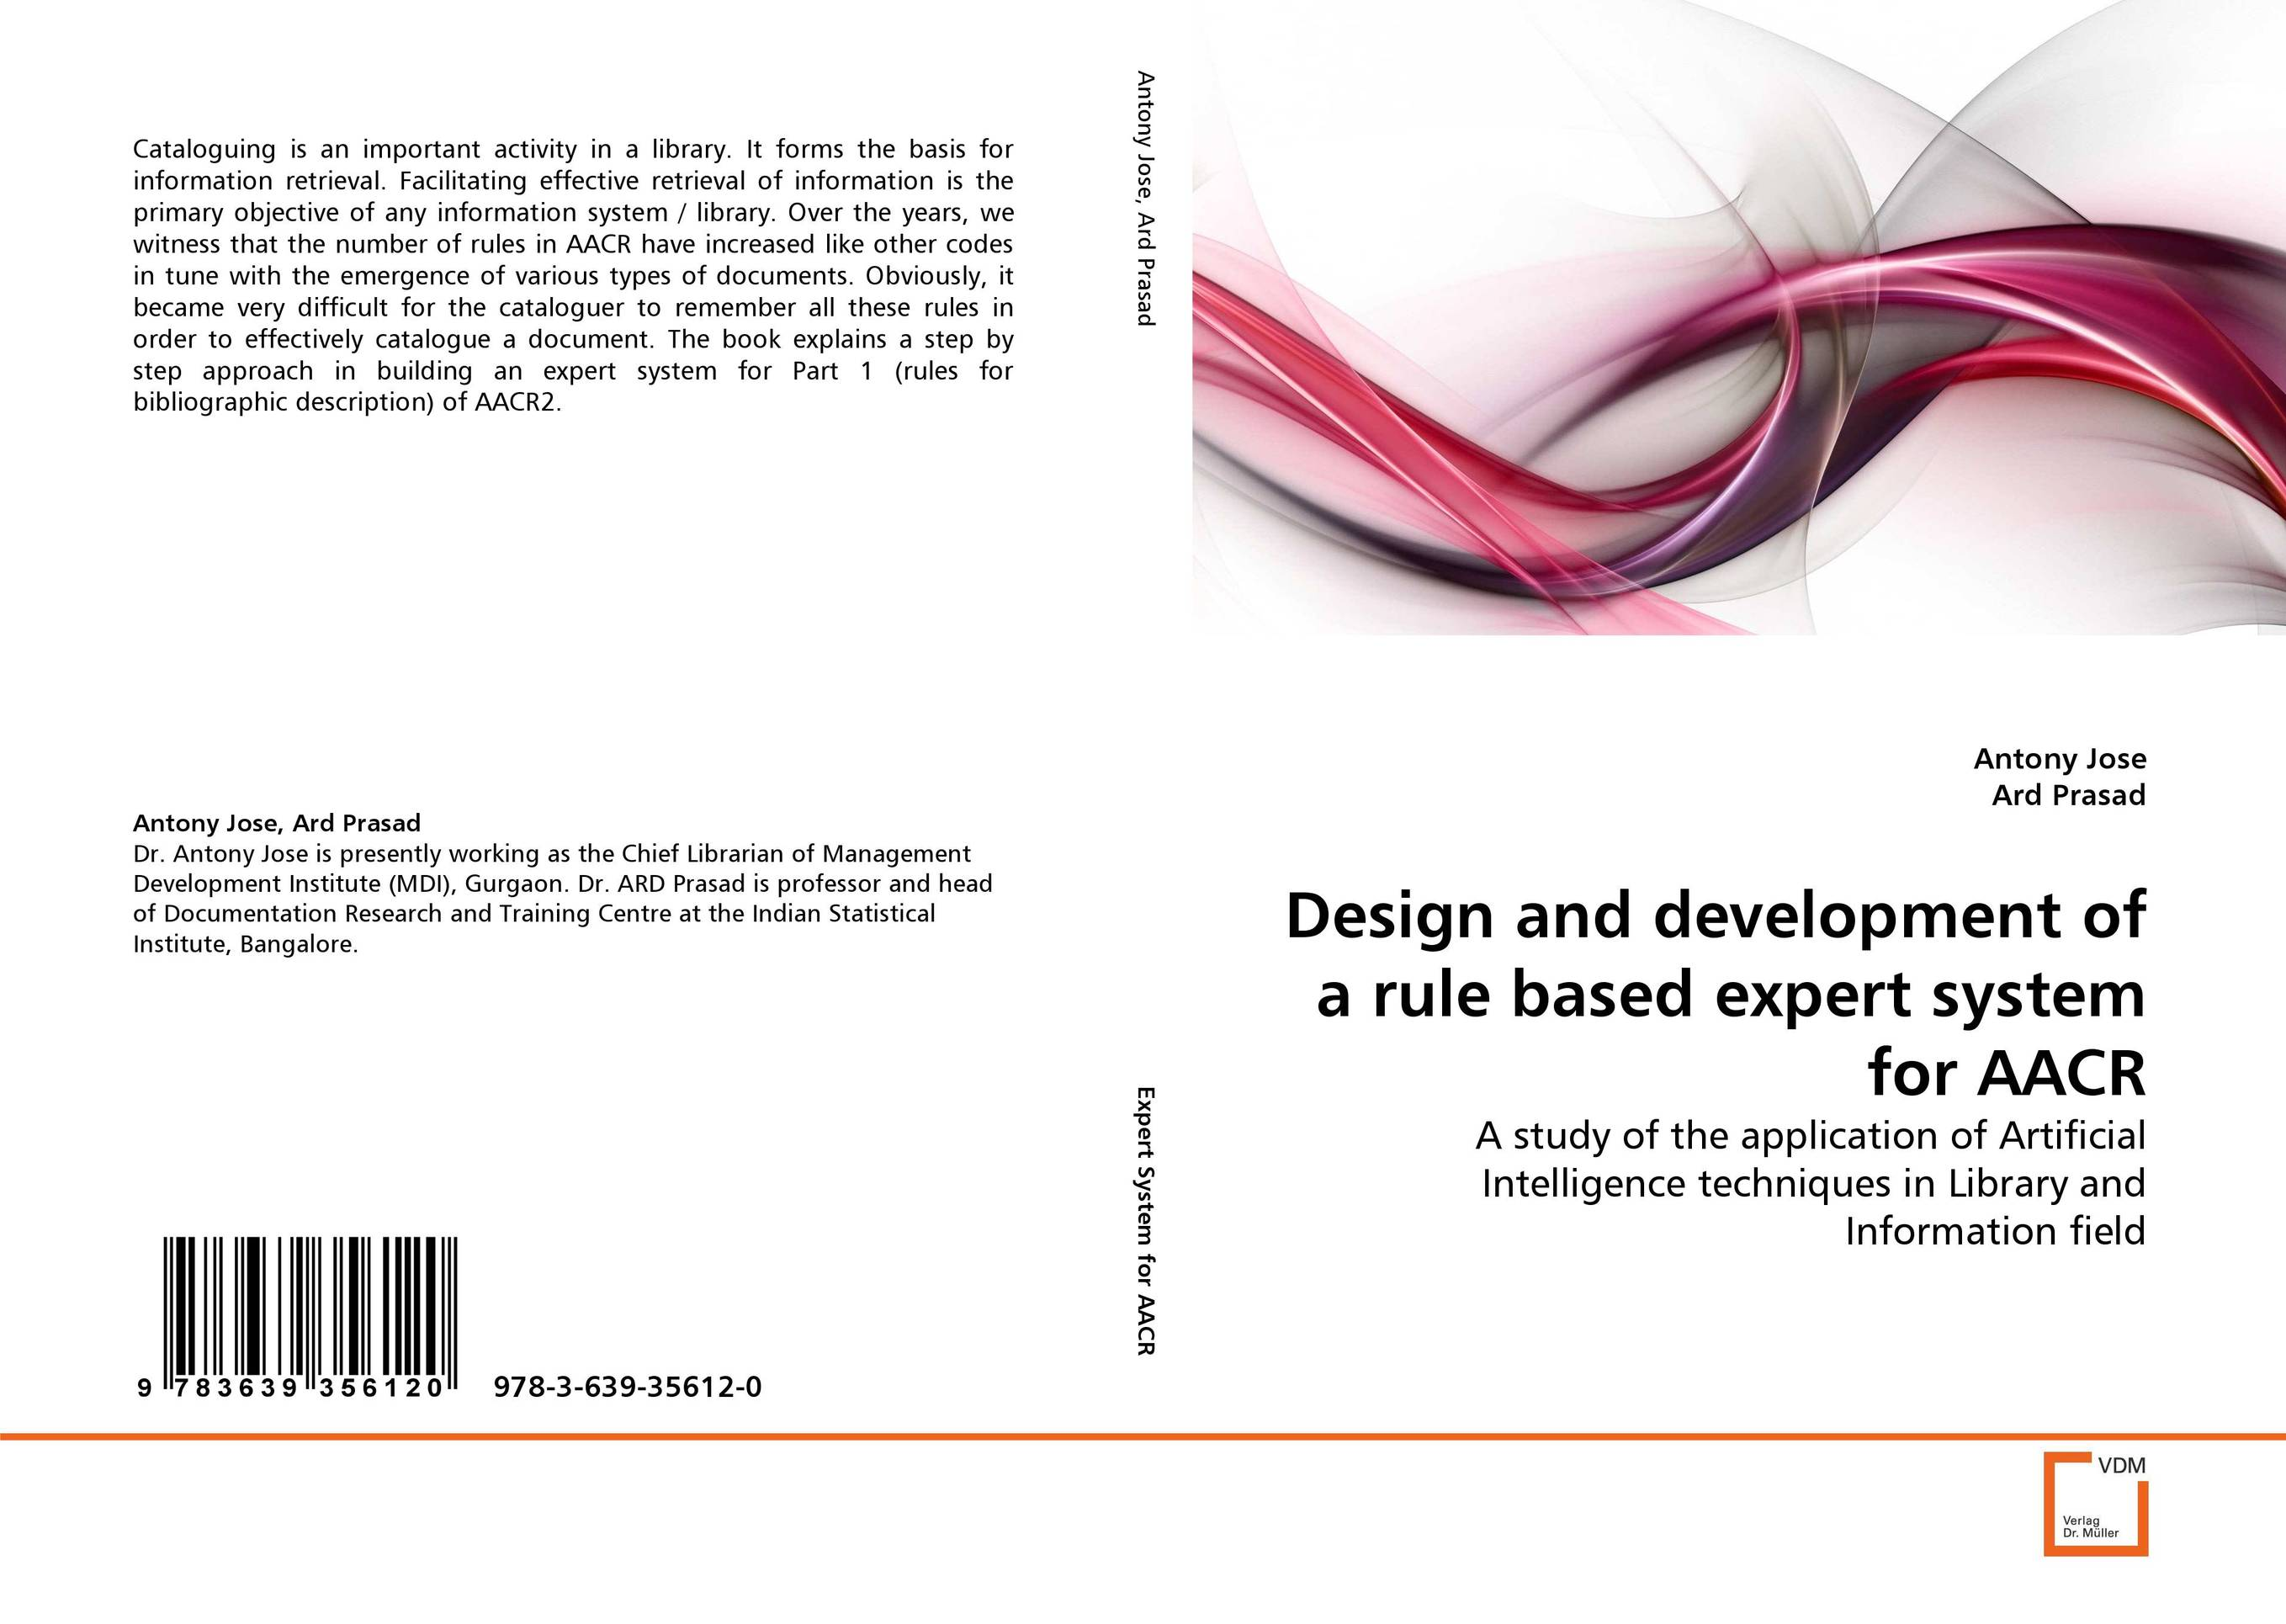 Design and development of a rule based expert system for AACR facilitating increased creativity for adults